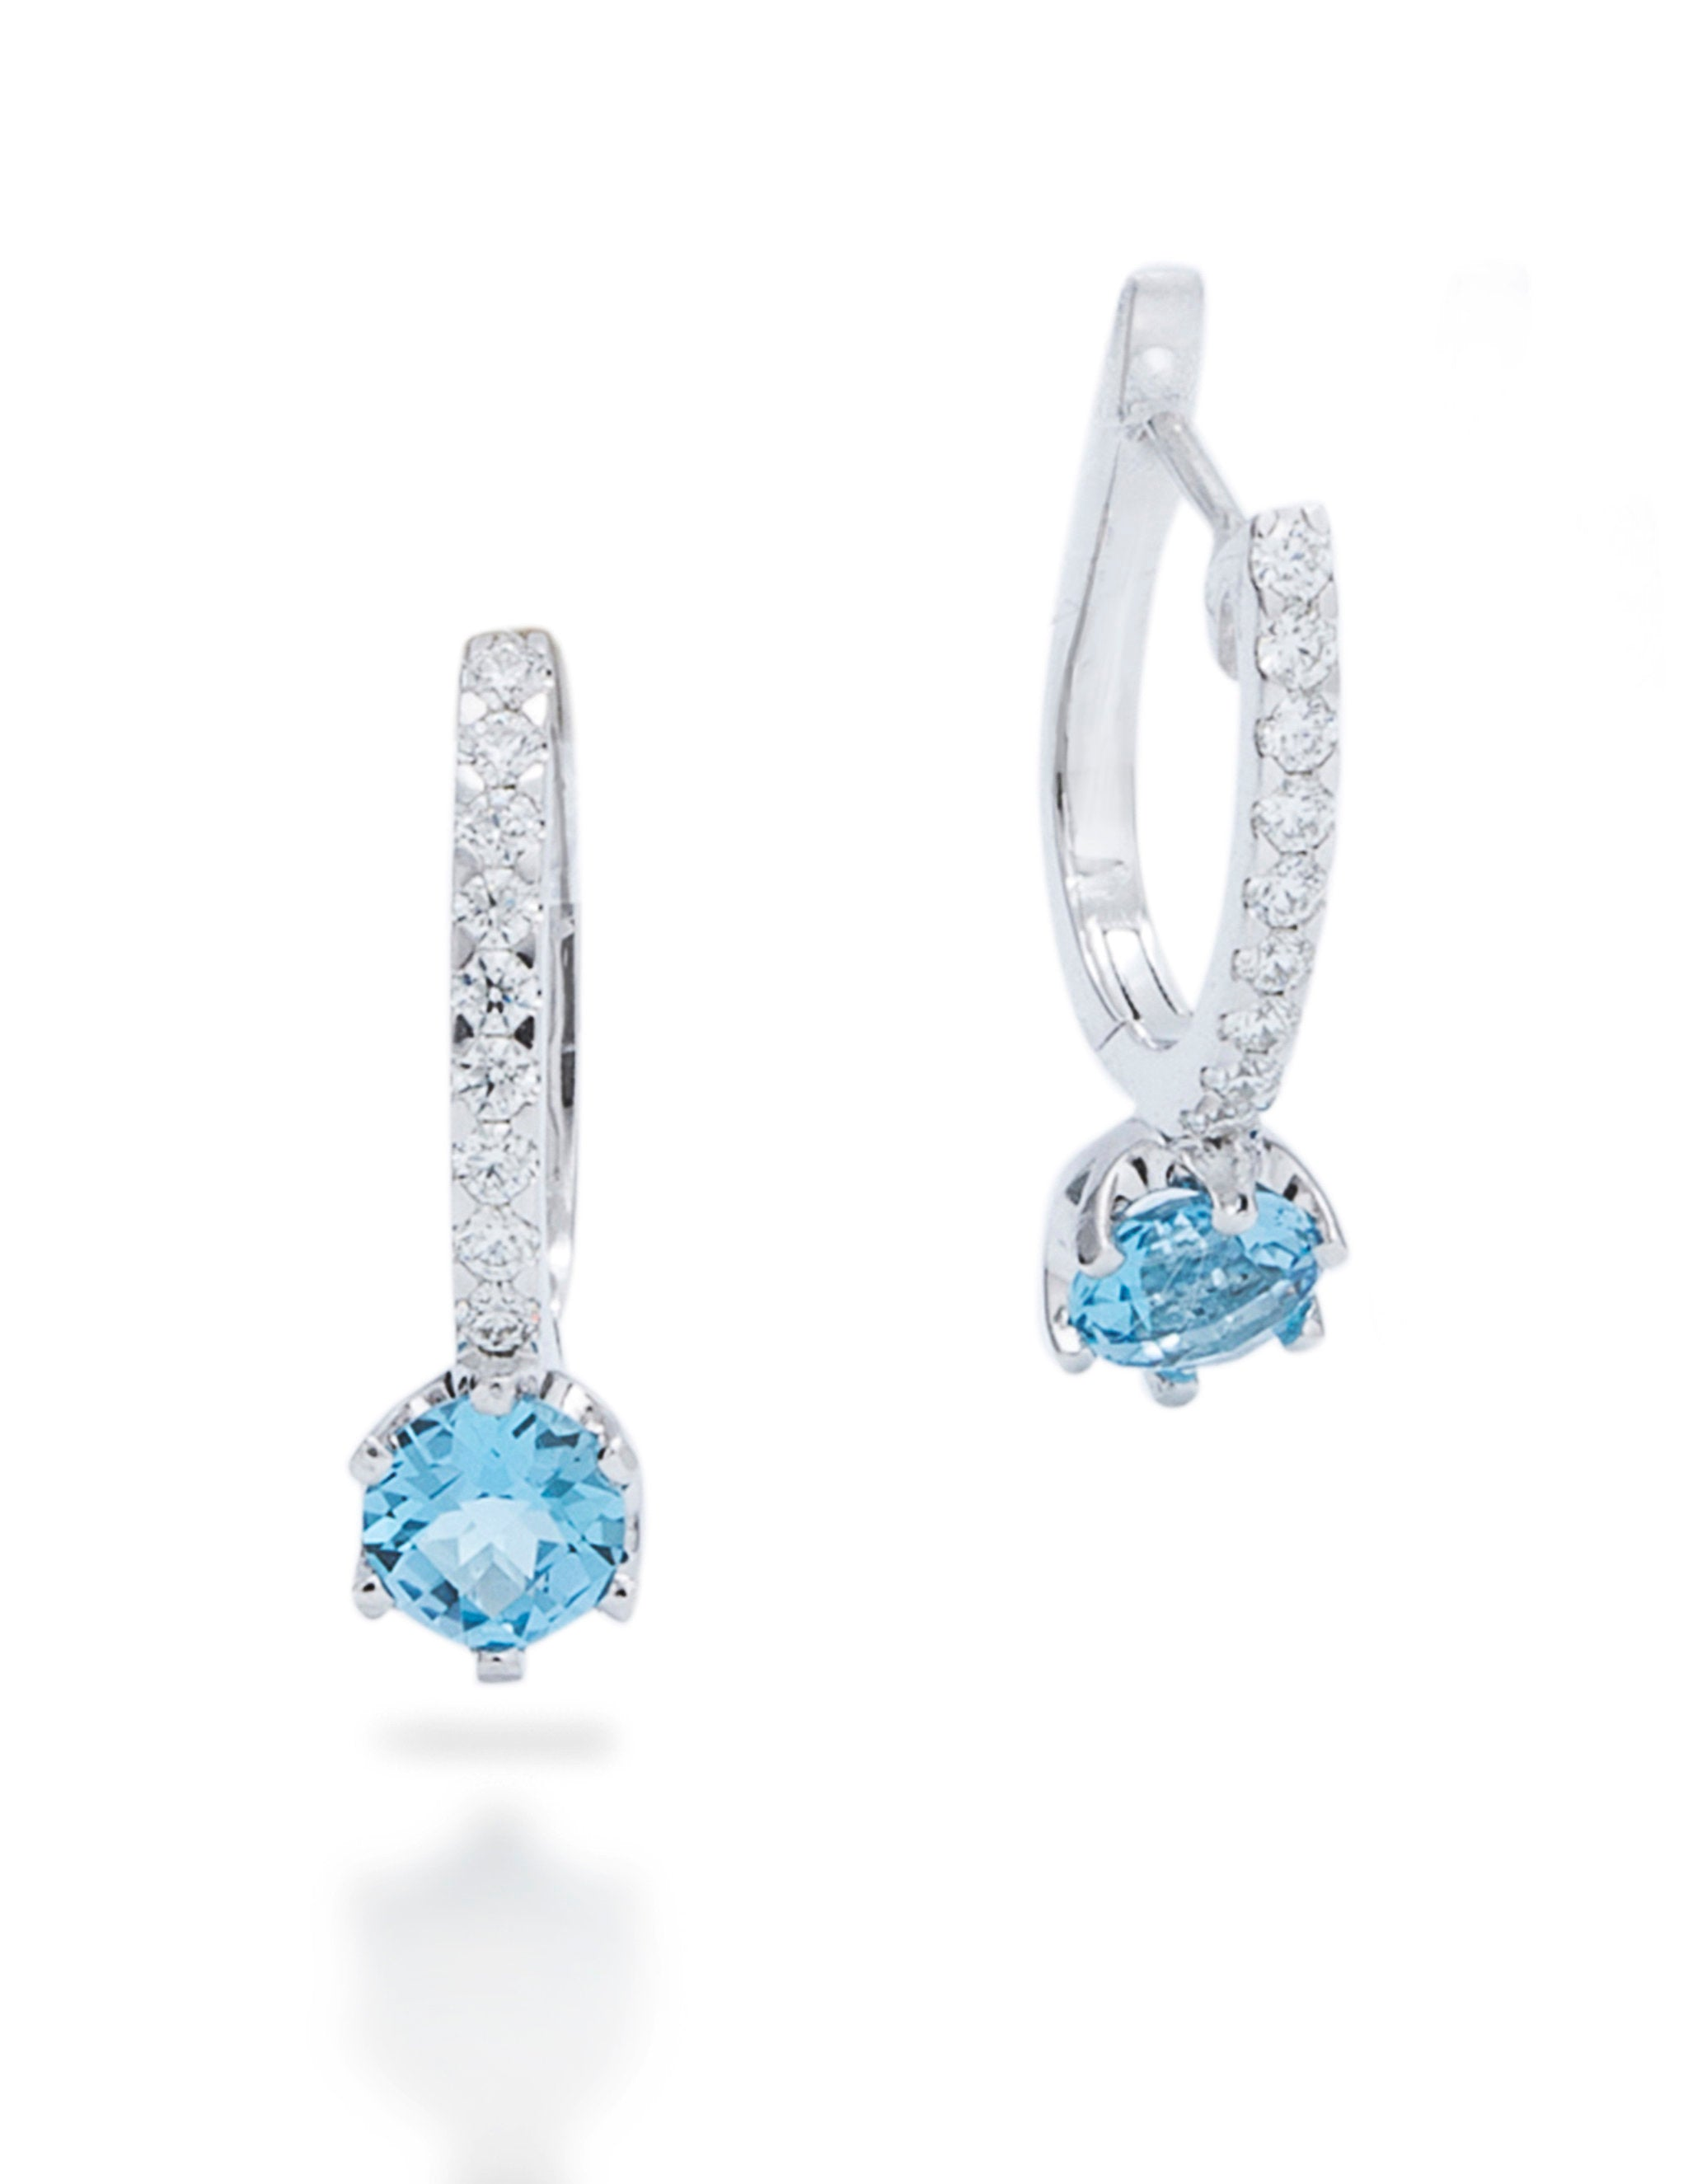 Swiss Blue Topaz and Diamond Drop Earrings - Charles Koll Jewellers